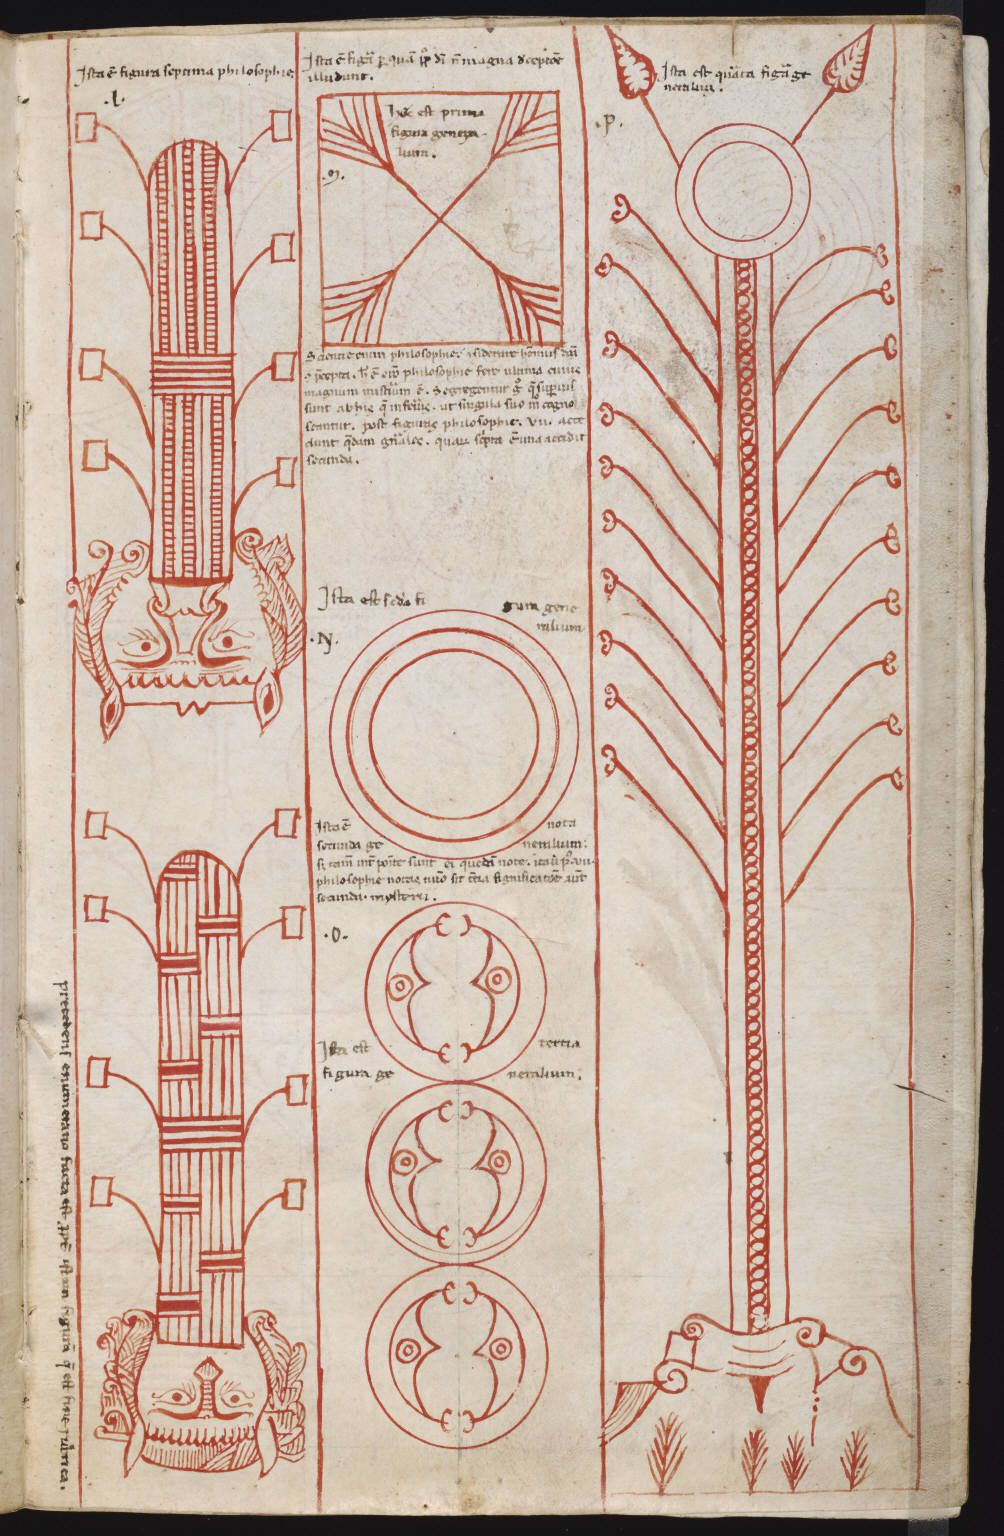 Alchemical emblems occult diagrams and memory arts ars notoria alchemical emblems occult diagrams and memory arts ars notoria biocorpaavc